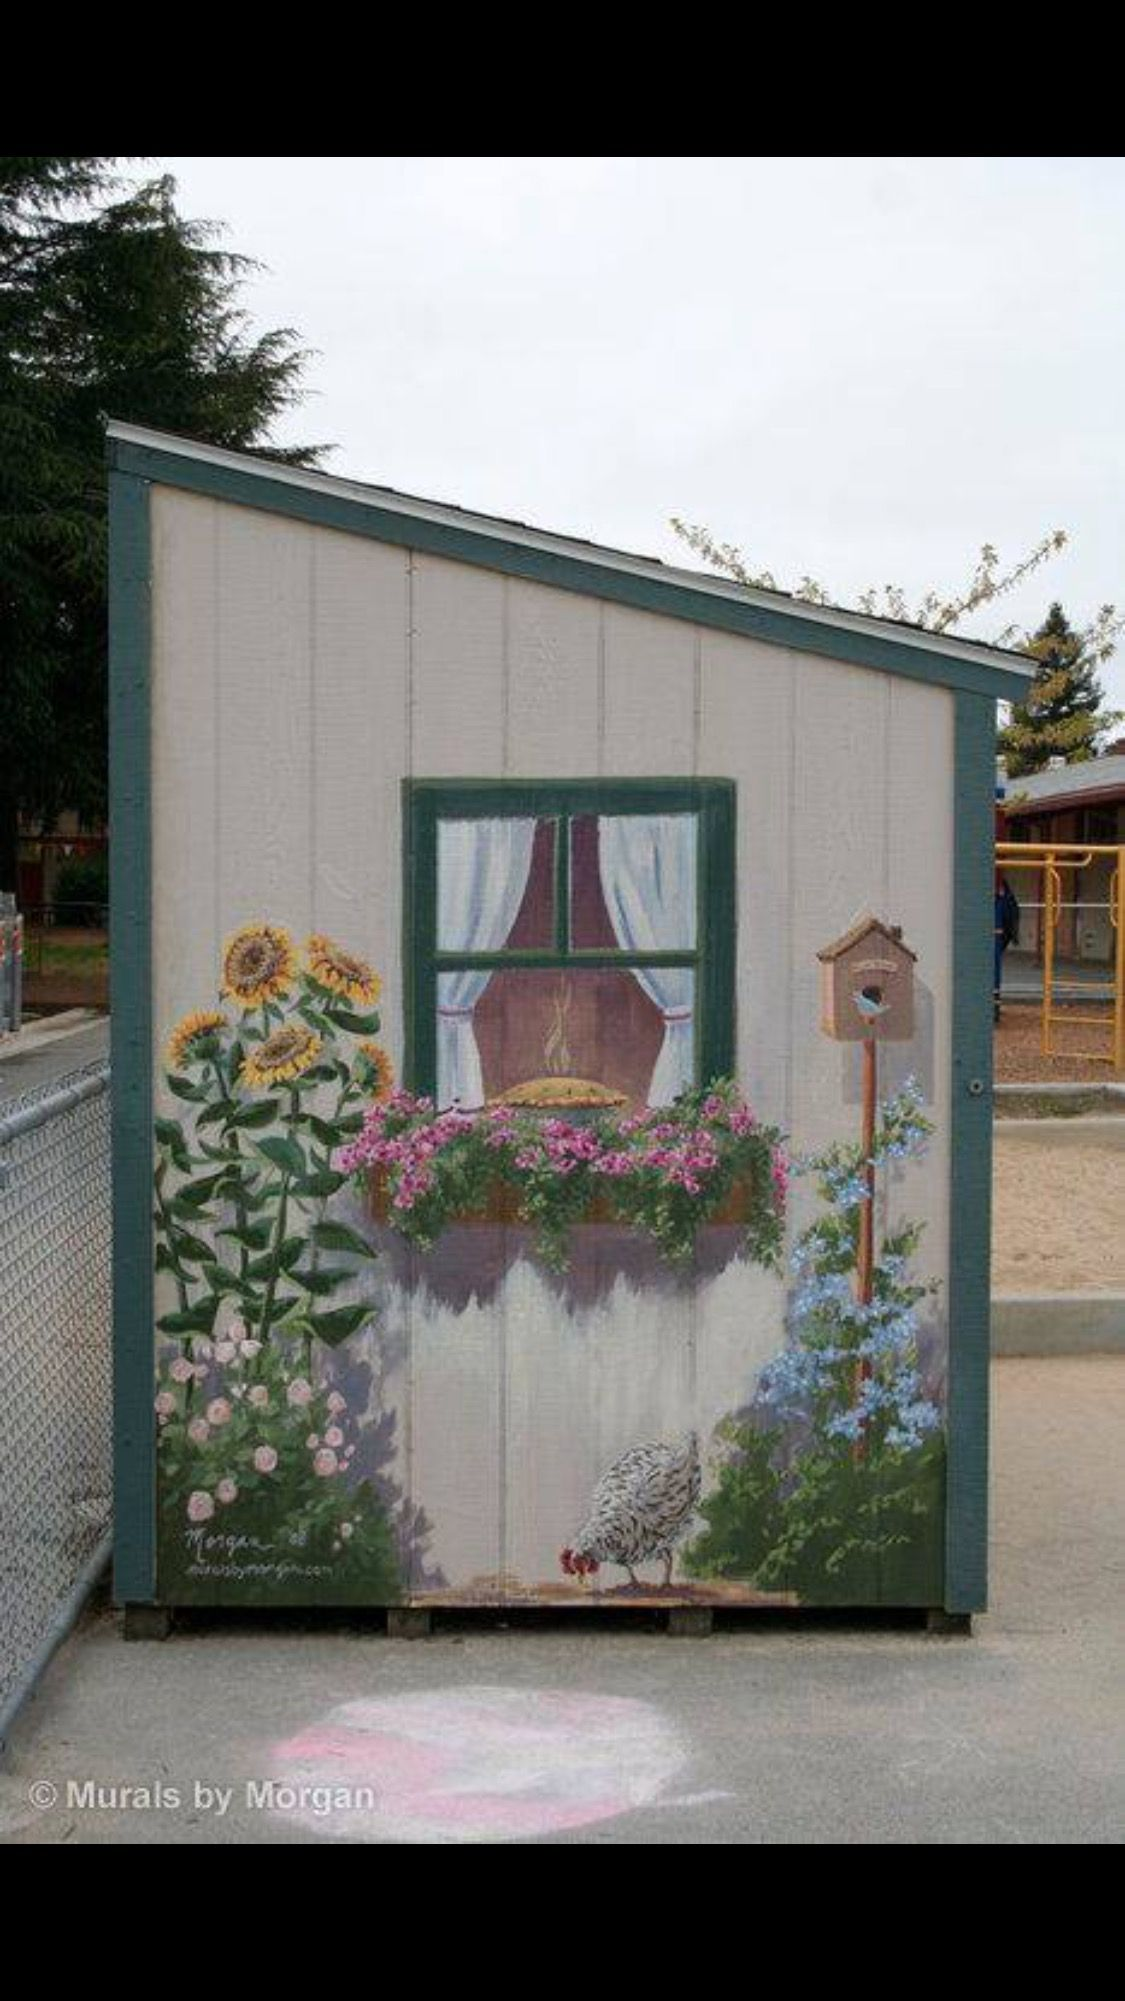 Pin By Evelyn Rossana Muino Villagran On Altered Furniture Garden Mural Painted Shed Fence Art